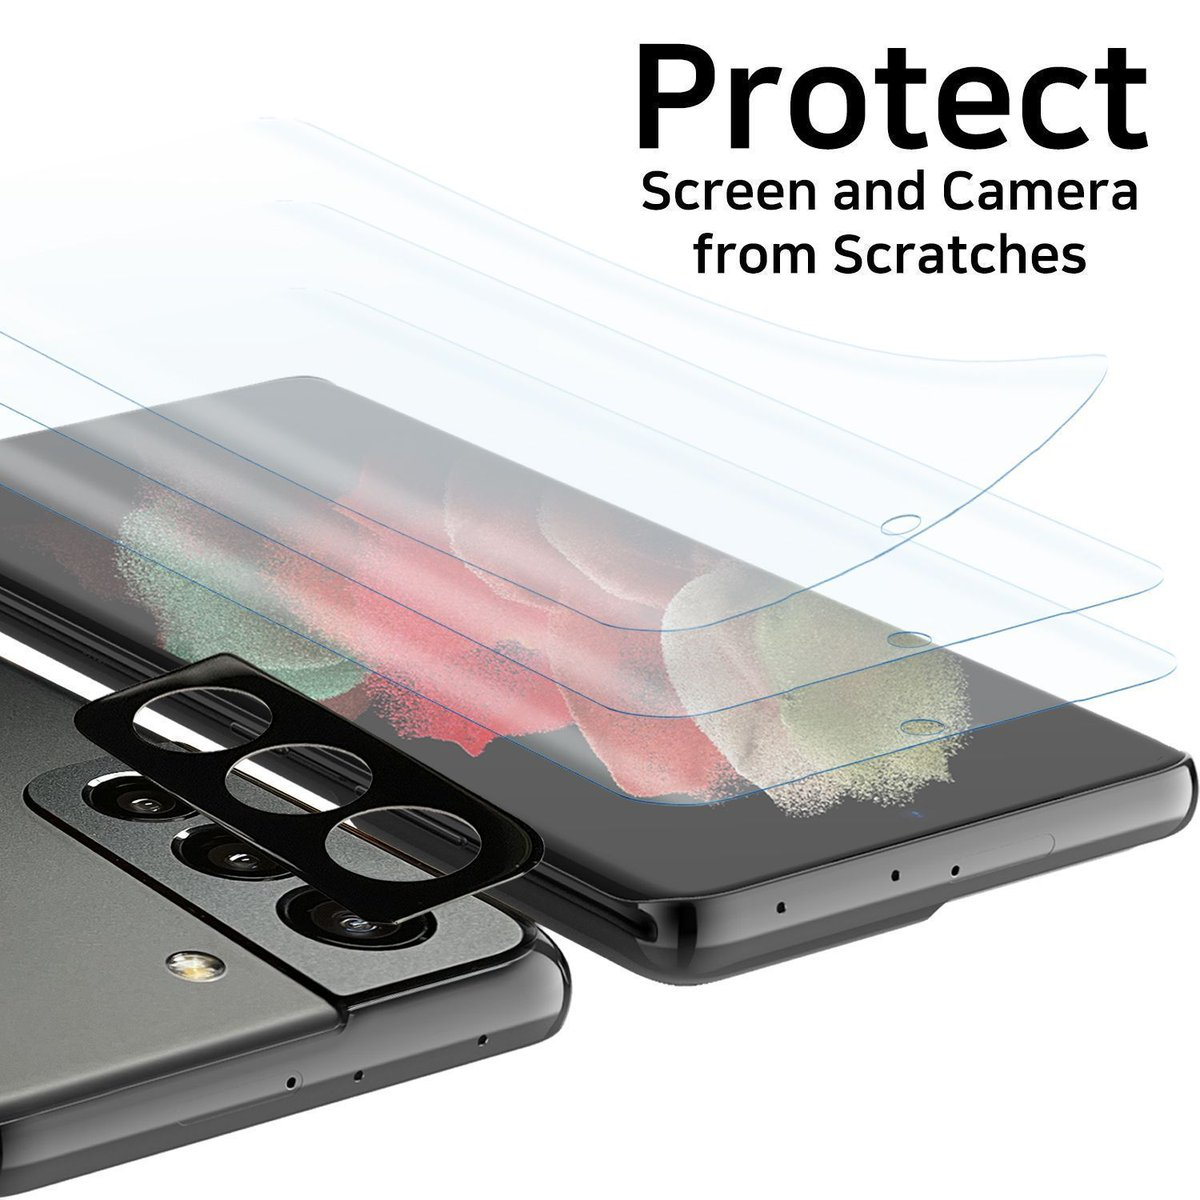 👀 Here is everything you need to protect 👀 Get protector for screen and camera, it only costs $14.99 for now   #S21Ultra #screenprotector #cameraprotector #whitestone #DomeGlass #Domefilm #screenfilm #Whitestonedomeglass #SamsungUnpacked  Shop now >